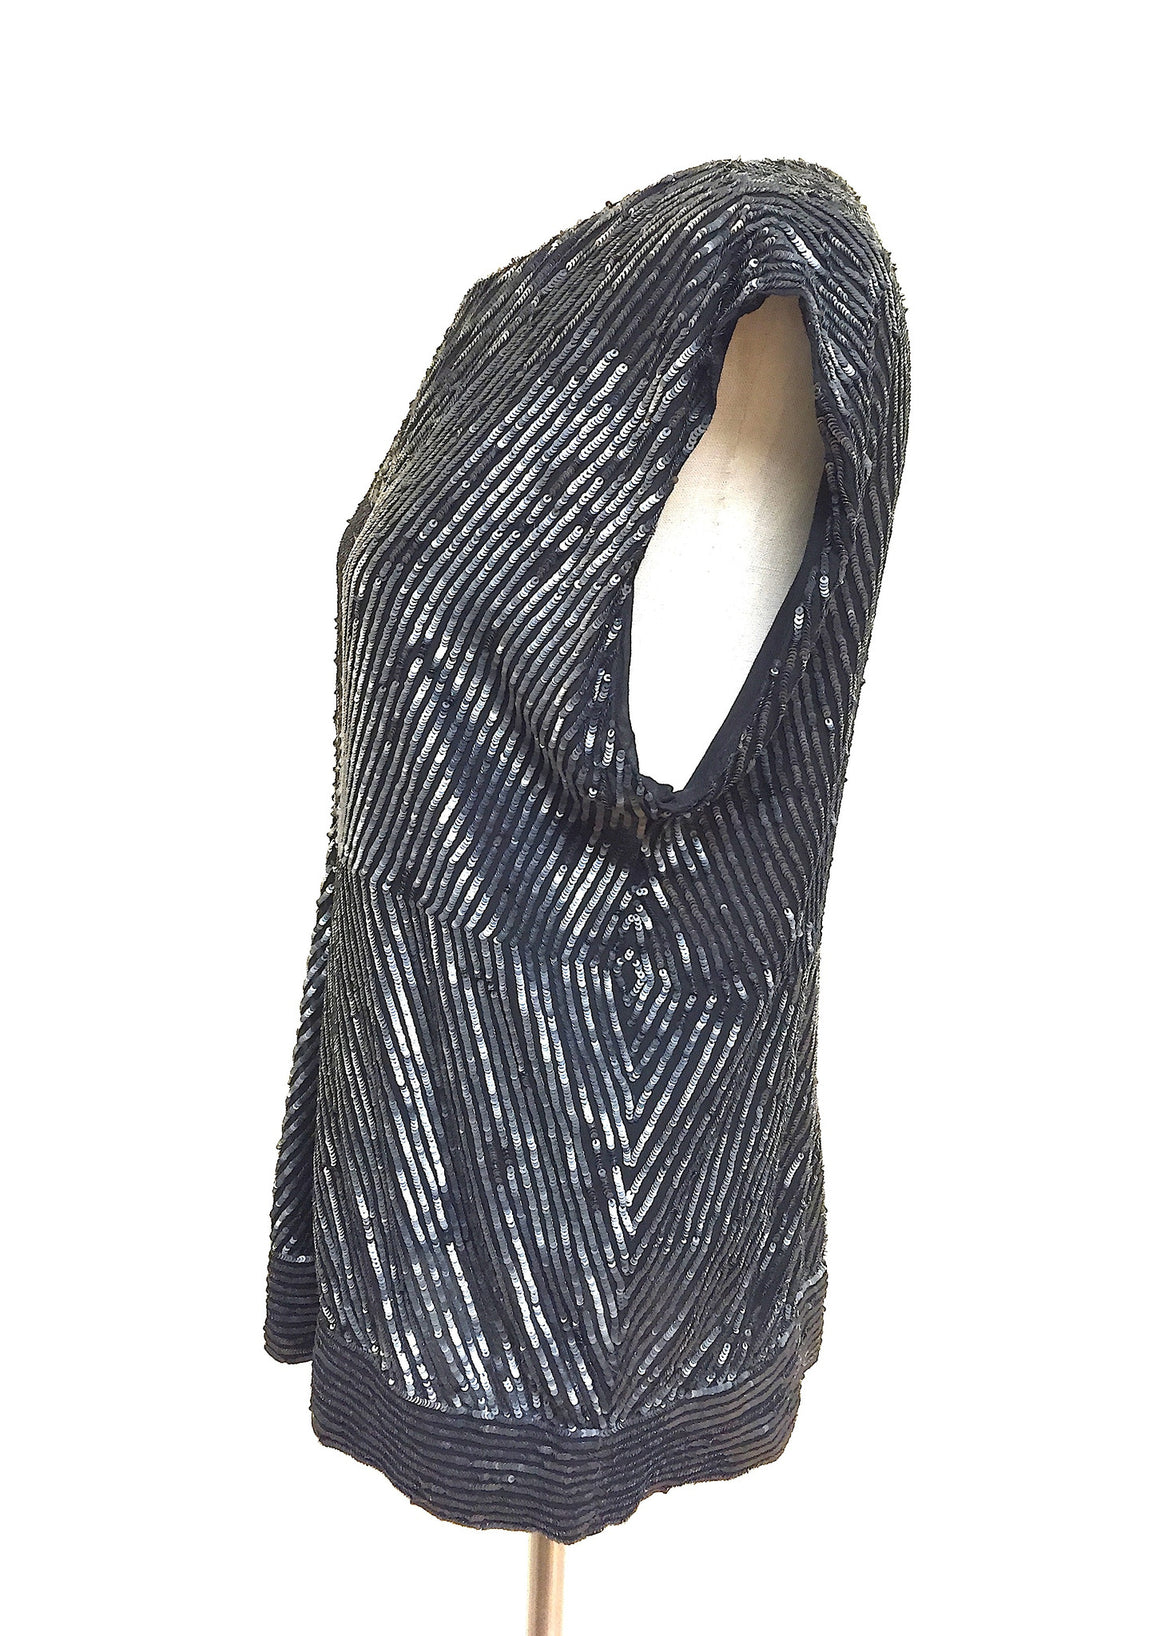 bisbiz.com JOSEPH  Graphite-Gray Sequined Black Silk  Sleeveless Blouse Top  Size: Large - Bis Luxury Resale